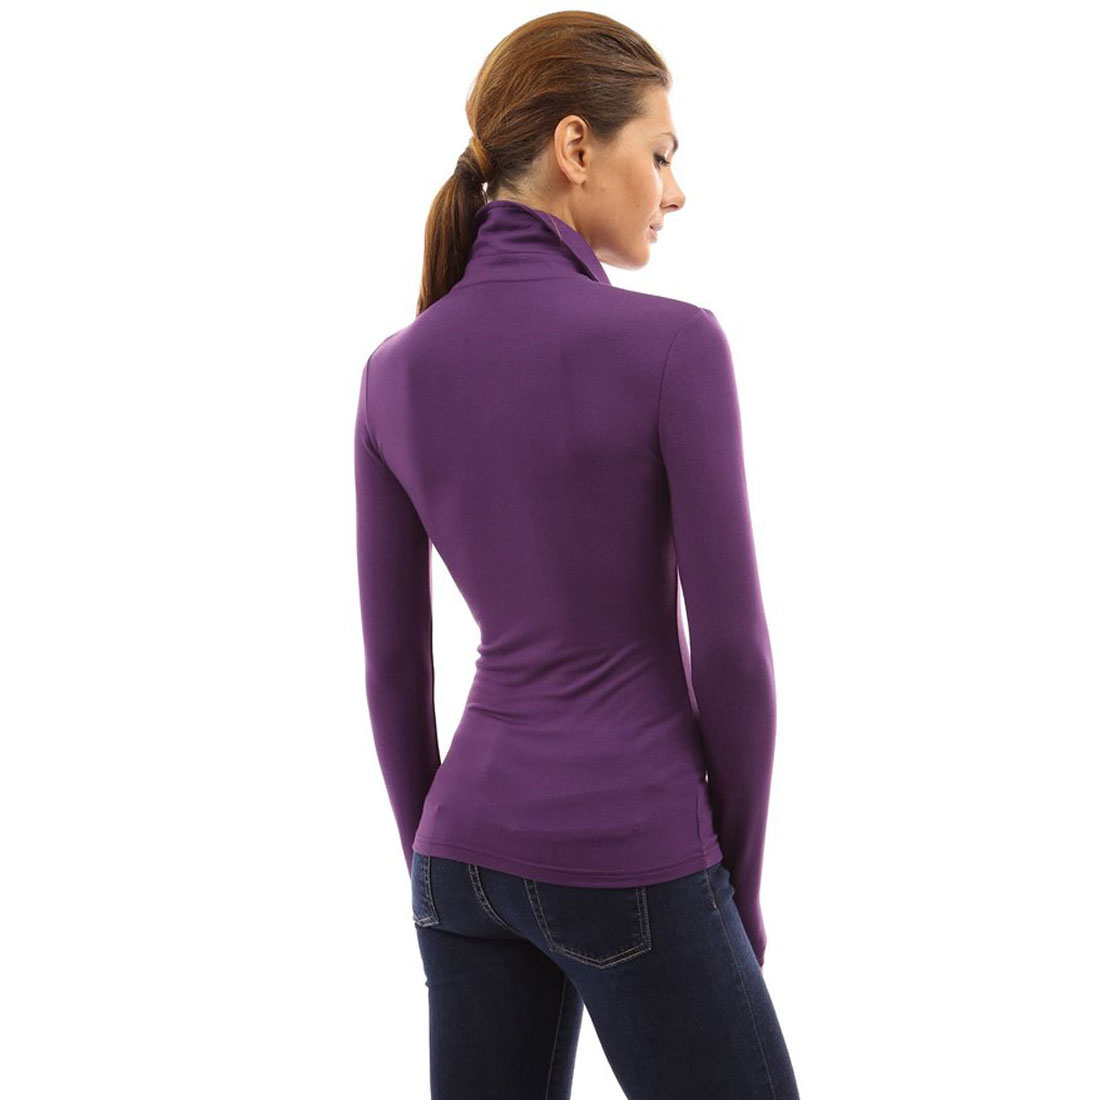 Women's Short Sleeve Tops. invalid category id. Women's Short Sleeve Tops. Showing 40 of results that match your query. Product - Women's Double Base Layer Long Sleeve Crew Tee (Black, Medium), Heavy XLarge Forst Polar Max Basics Sleeve Black Polarmax Womens Shirt Quattro Mens.., By Polarmax. Reduced Price.